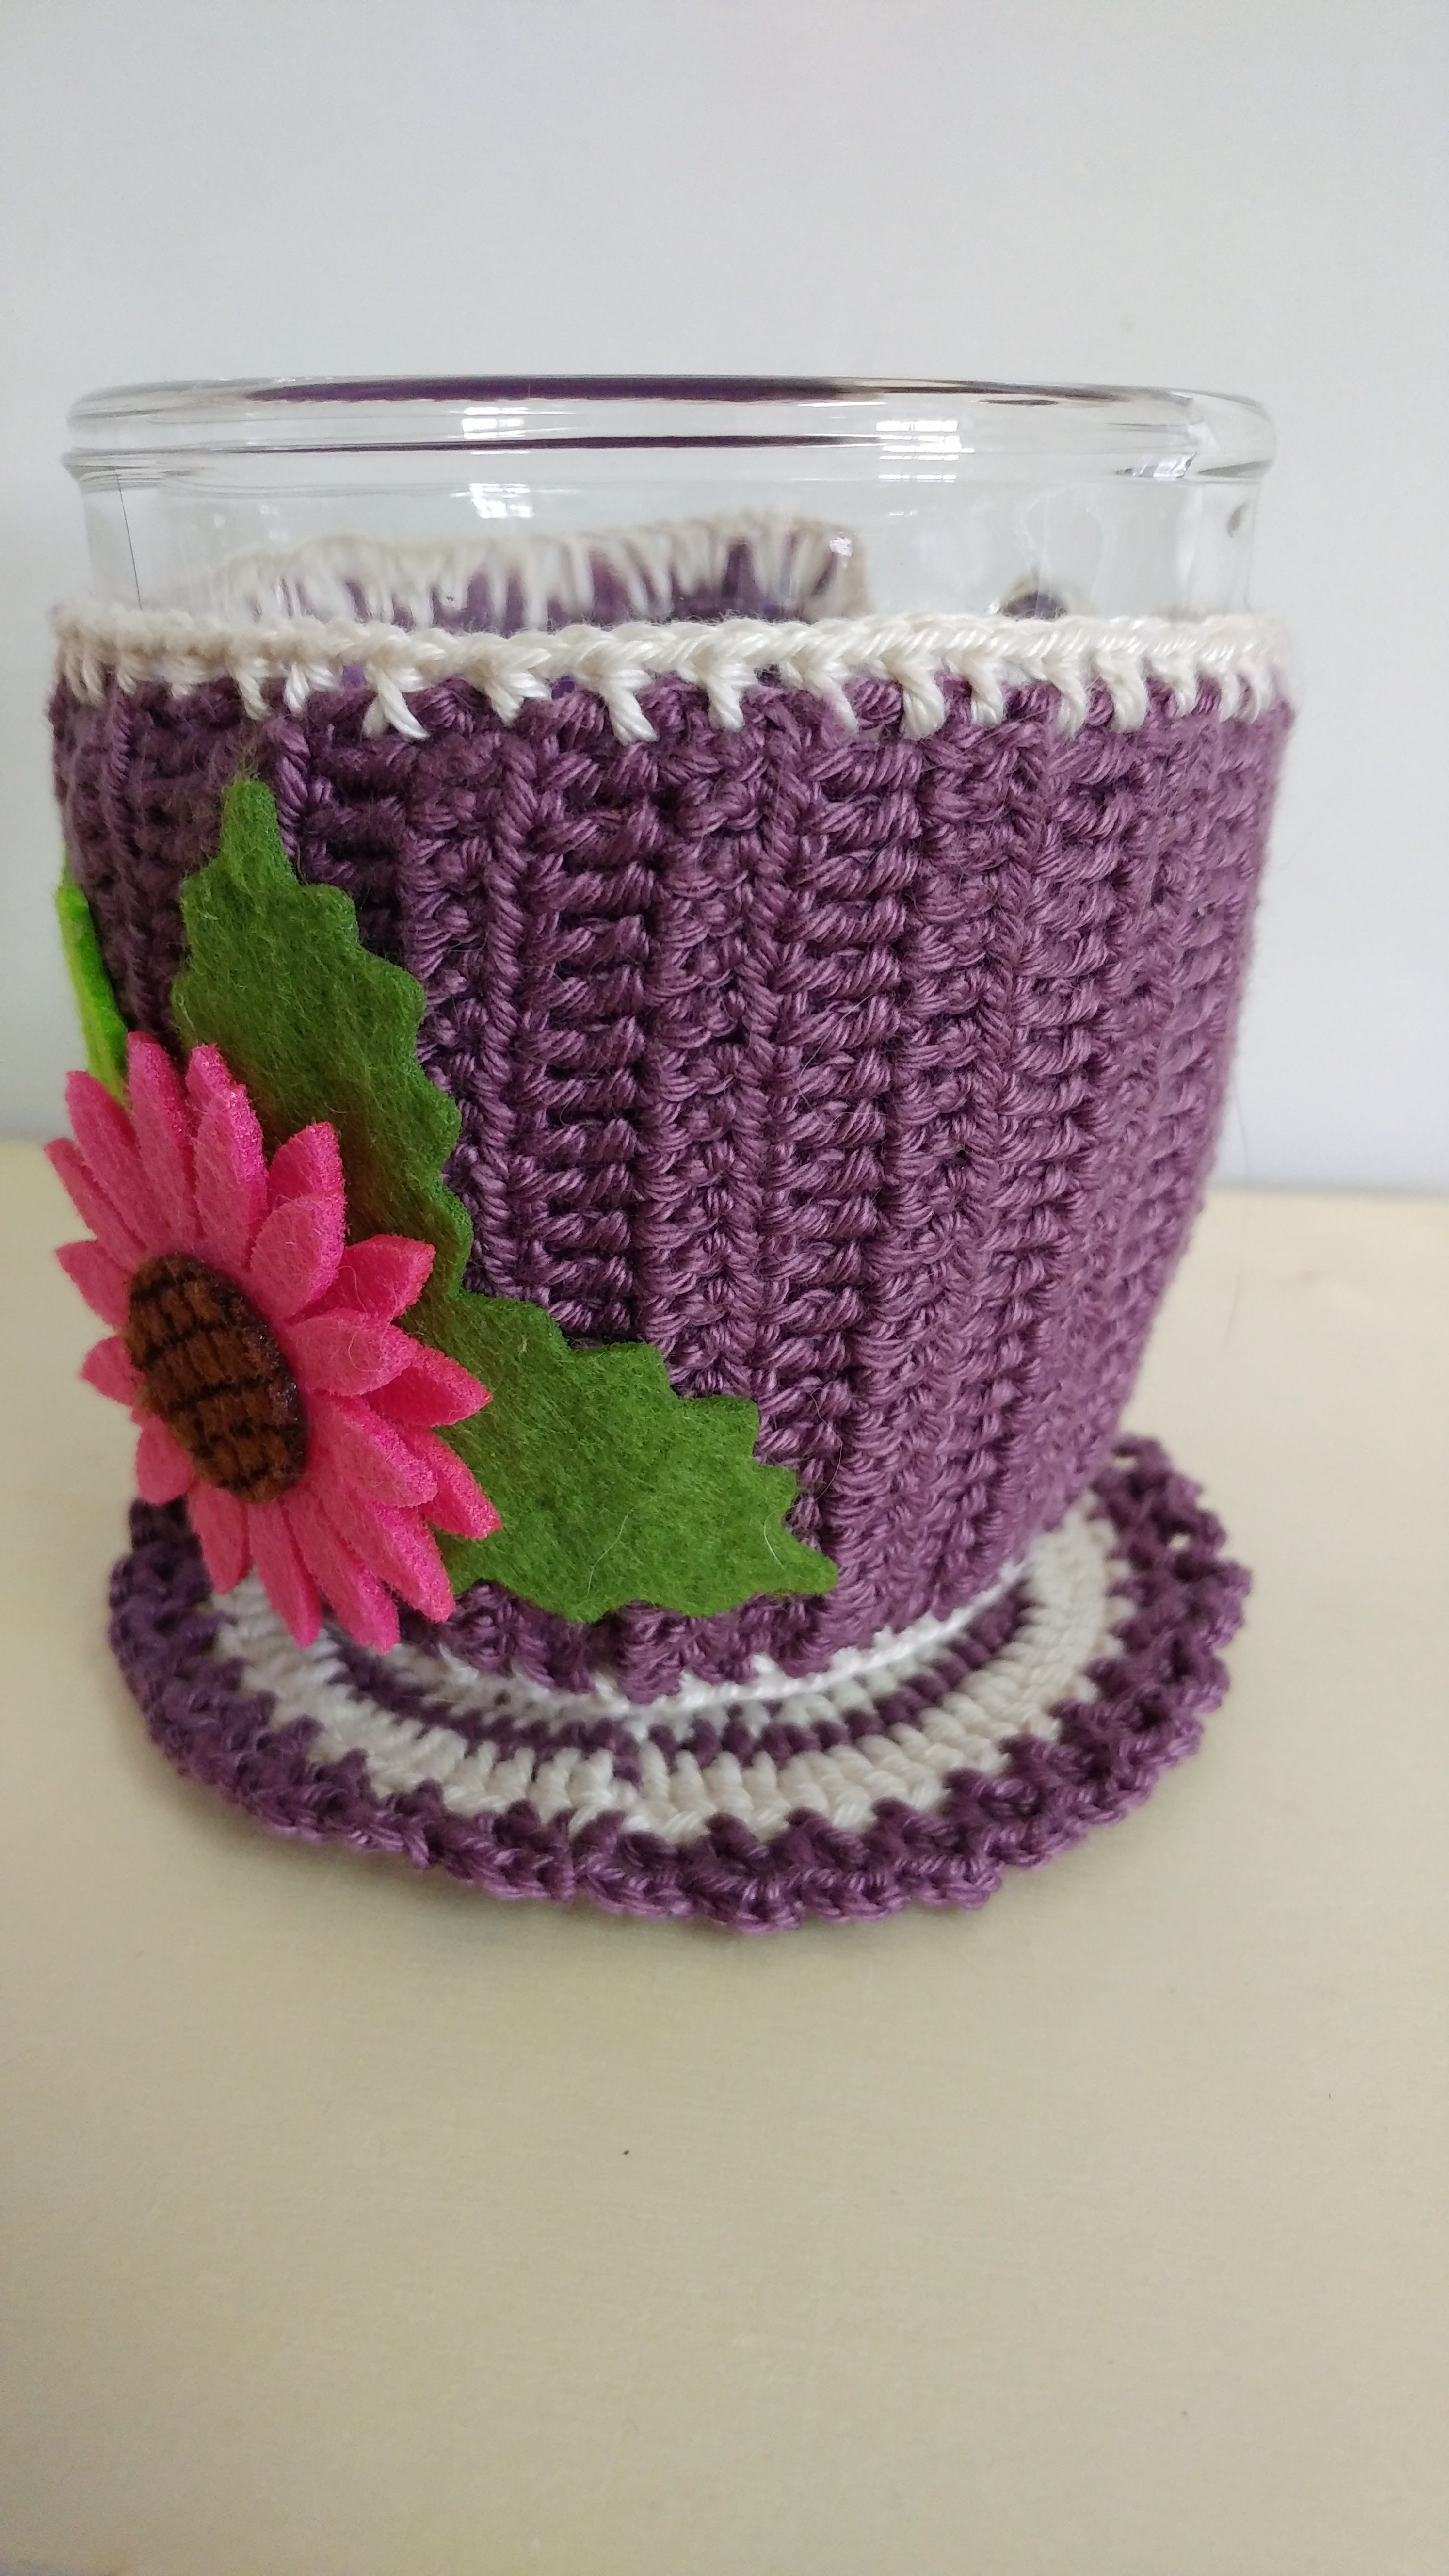 cover mug cozy sweater coaster crochet stocking hot christmas beverages